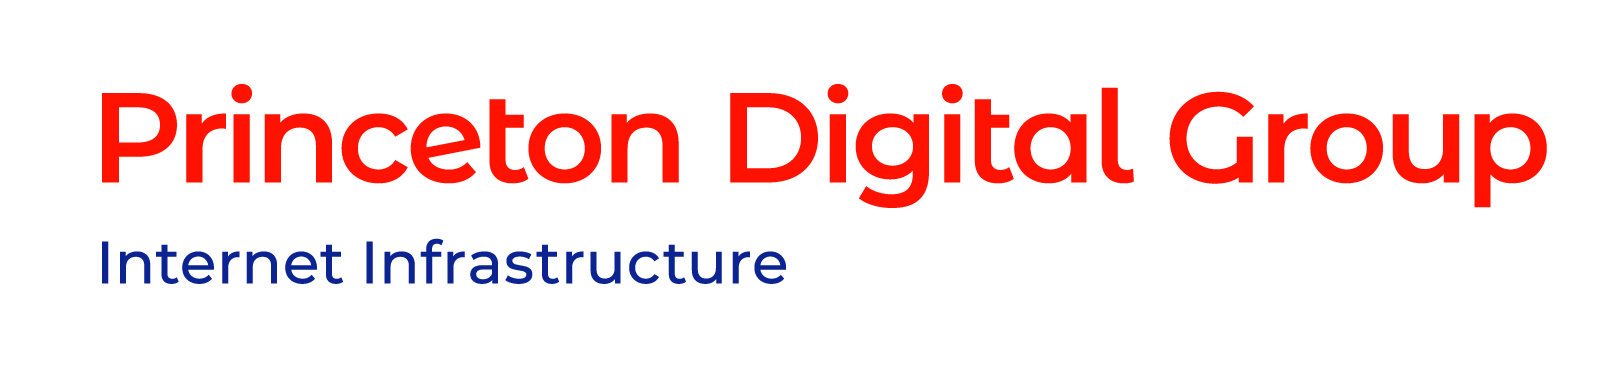 Princeton Digital Group